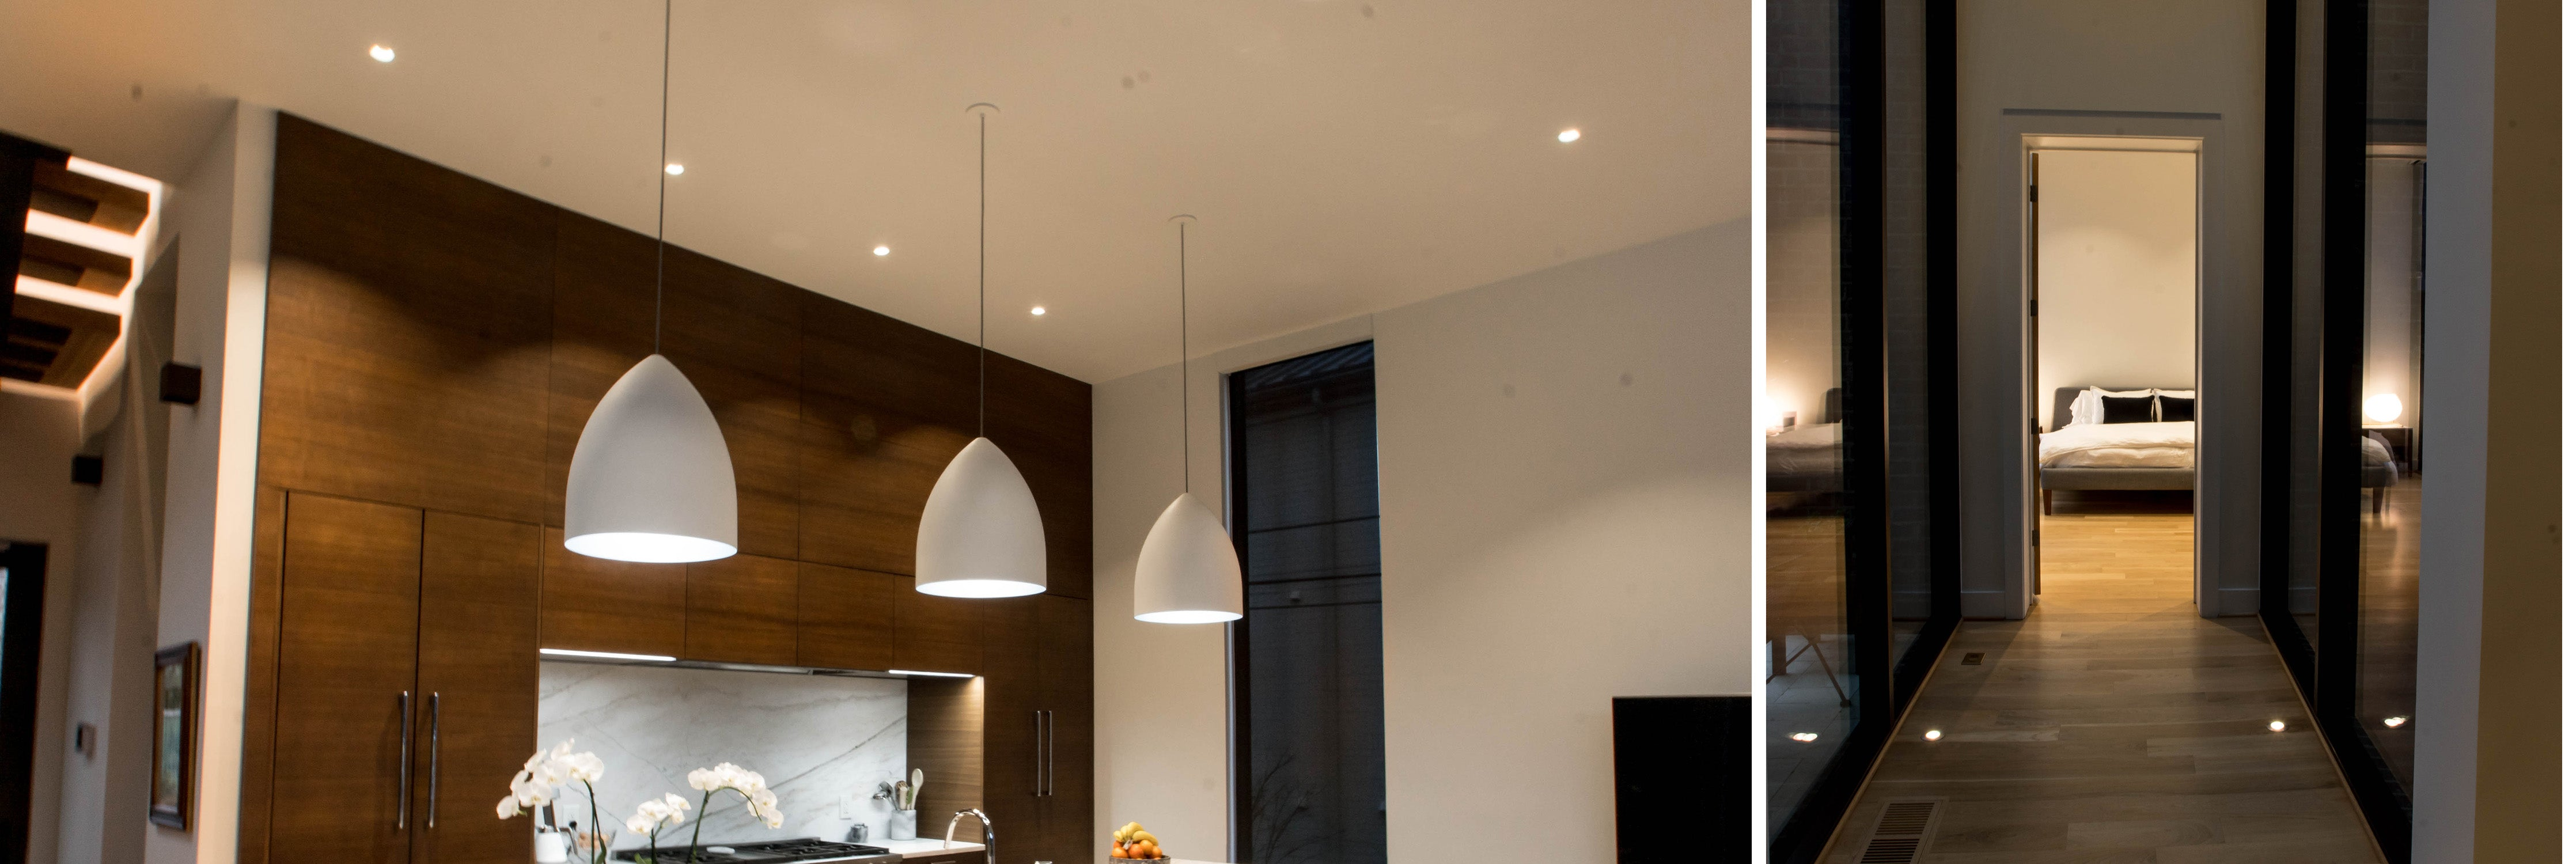 Lighting Design by Lighting and Bulbs Unlimited (Charlotte Agenda's Home of the Year 2019)